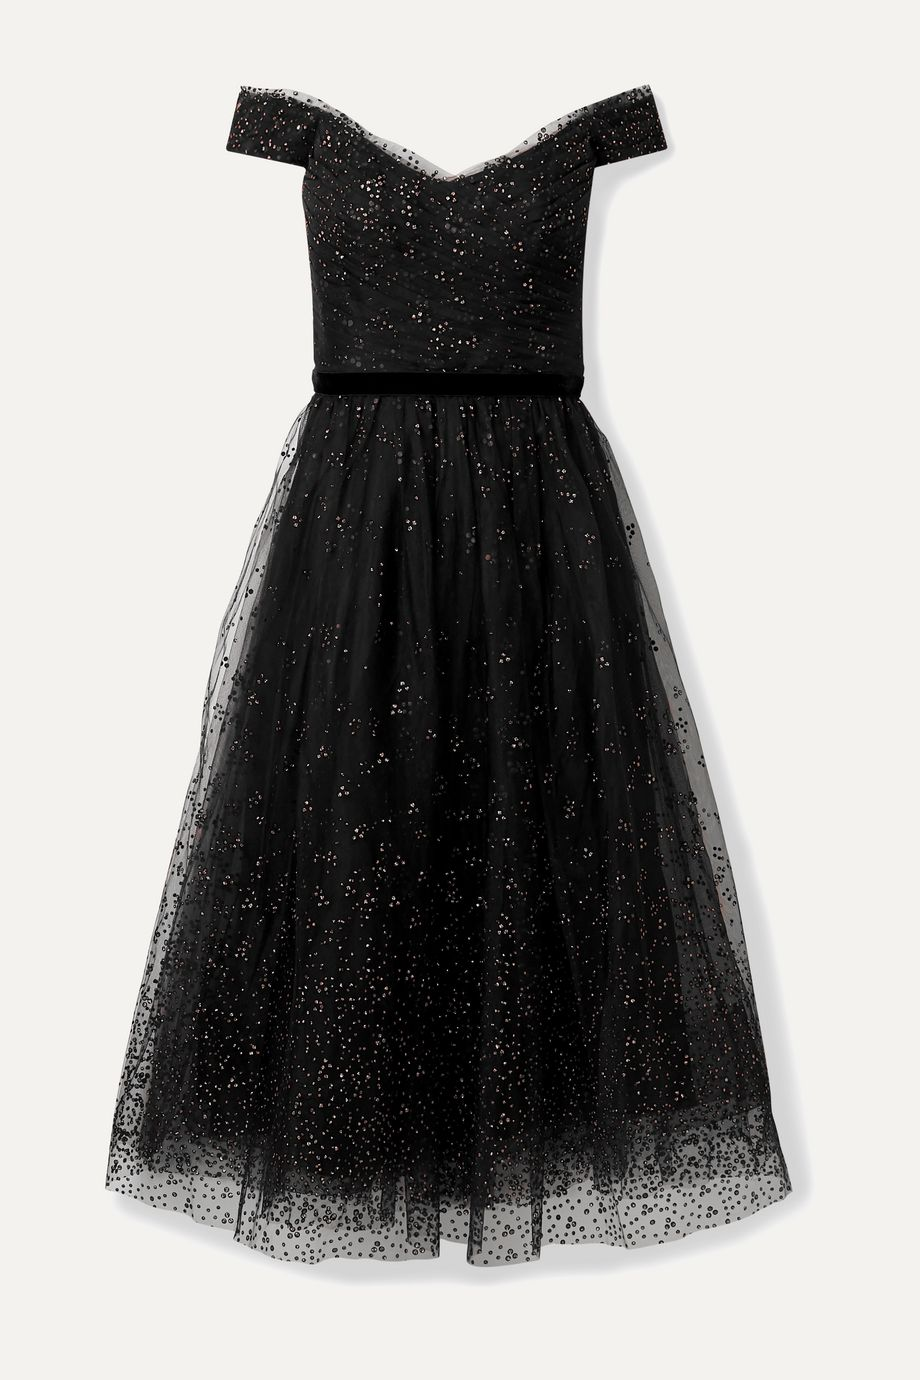 Marchesa Notte Off-the-shoulder glittered tulle gown